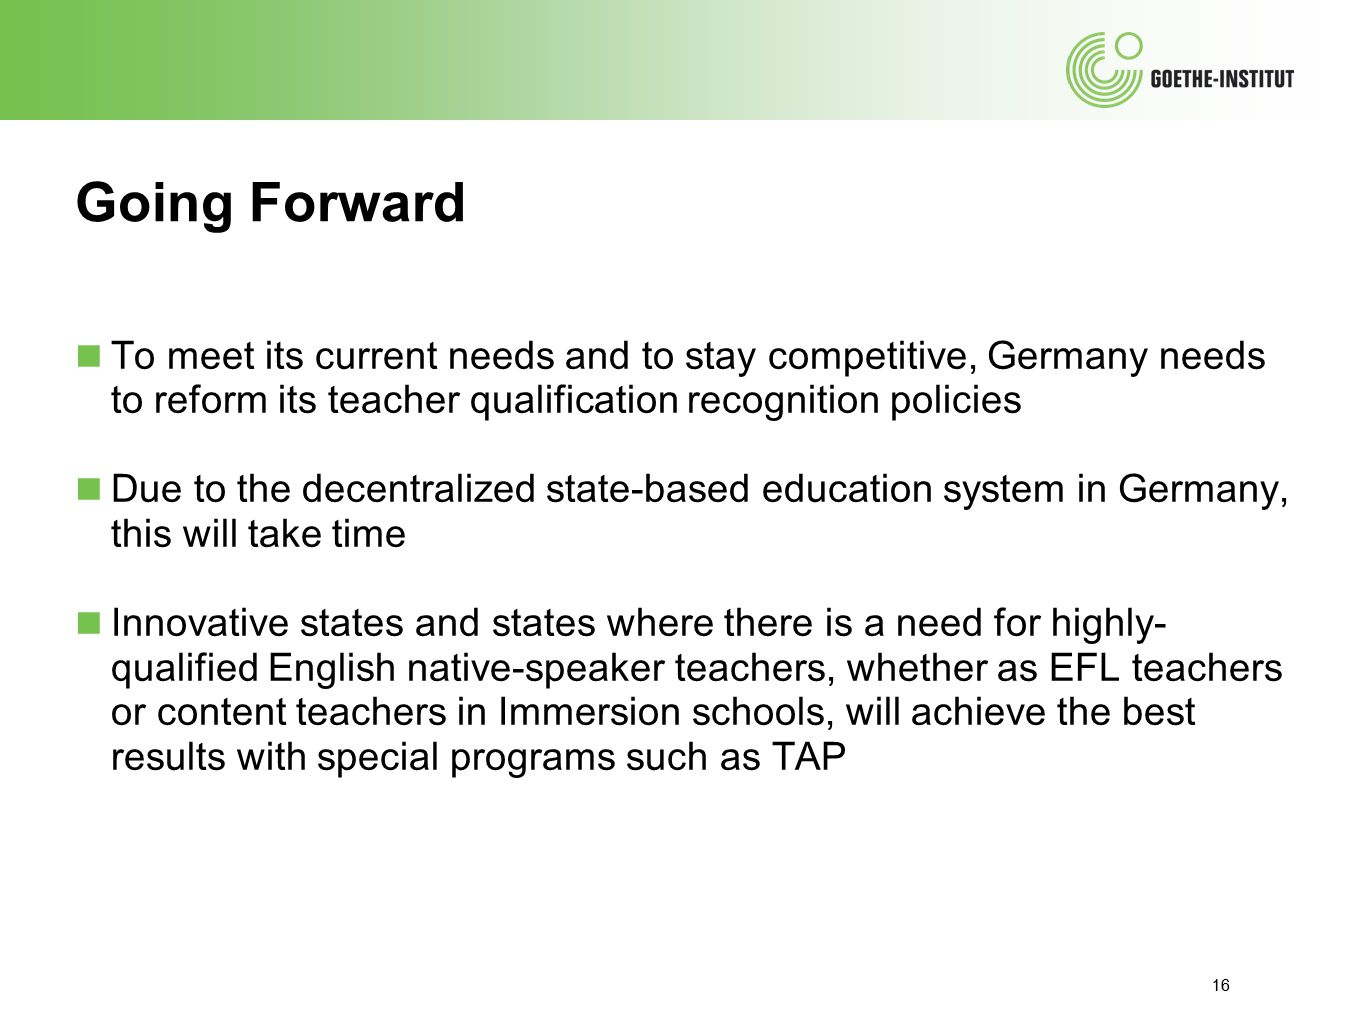 Going Forward To meet its current needs and to stay competitive, Germany needs to reform its teacher qualification recognition policies.